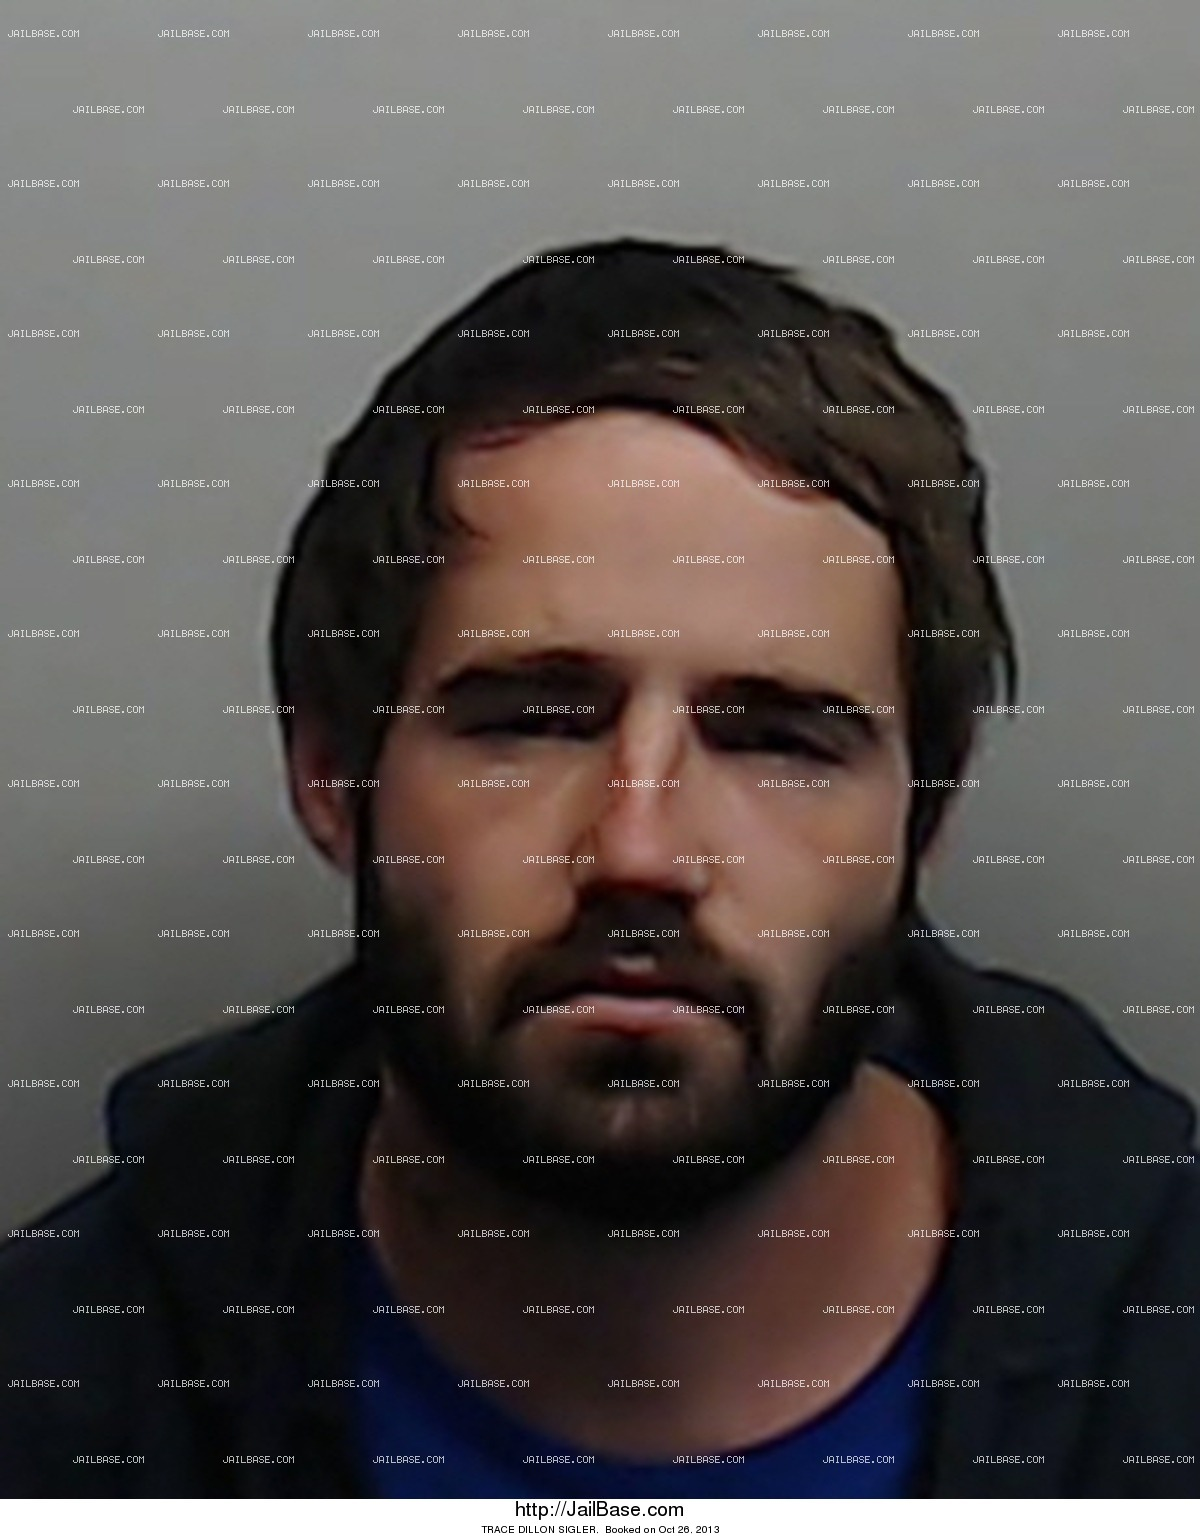 trace dillon sigler mugshot picture